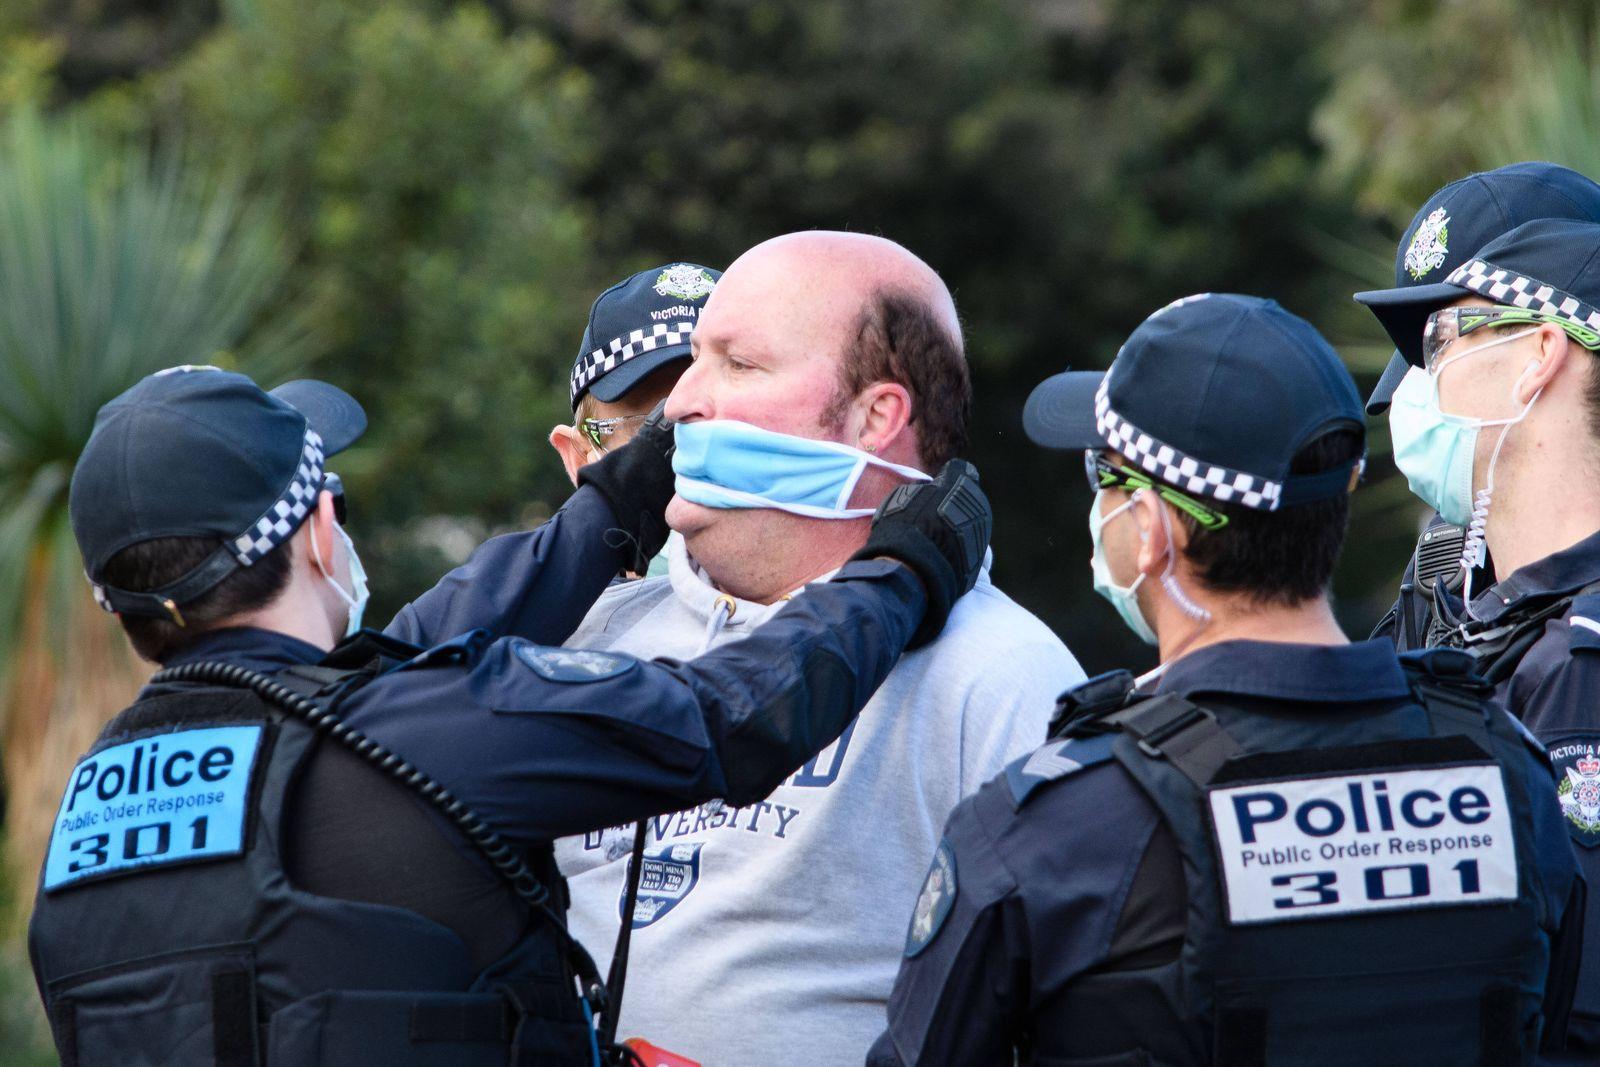 September 5, 2020, Melbourne, Victoria, Australia: A protester is arrested at a Freedom Day protest against lockdown reg